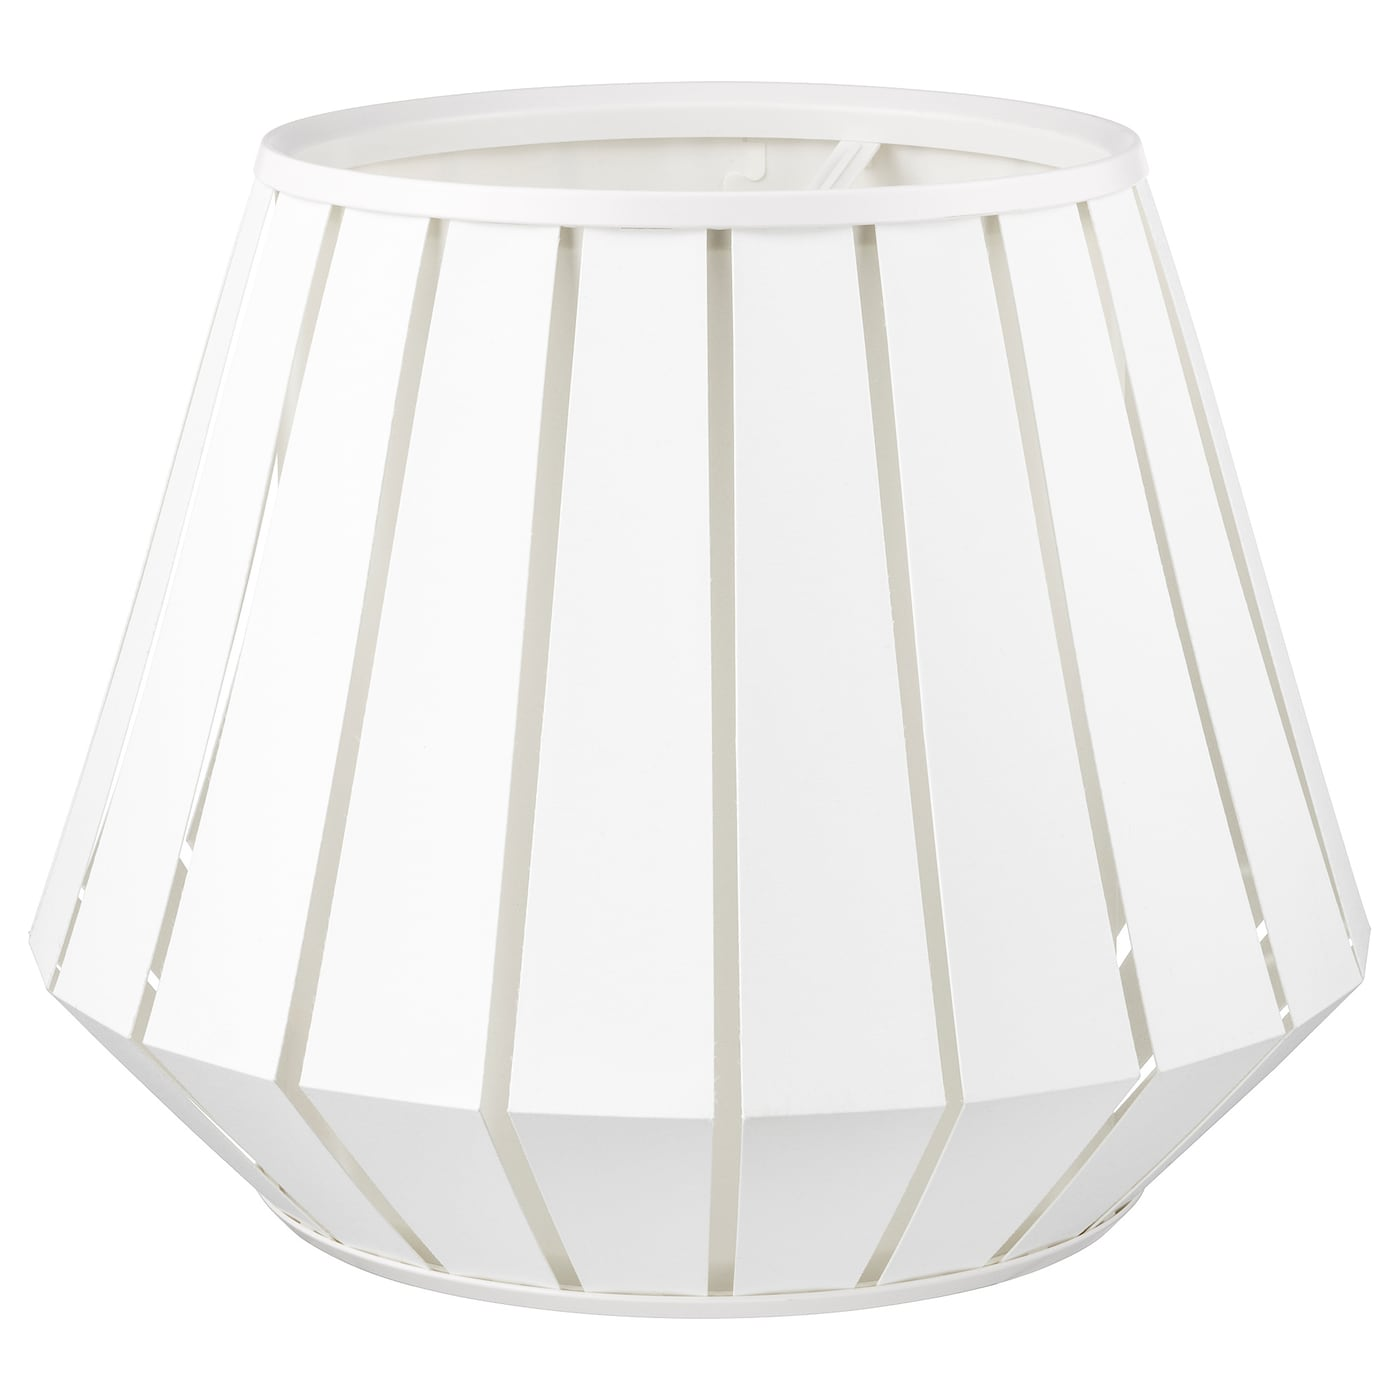 Light Fittings Ceiling Shades Ikea Wiring Fixture No Black White Lakheden Lamp Shade